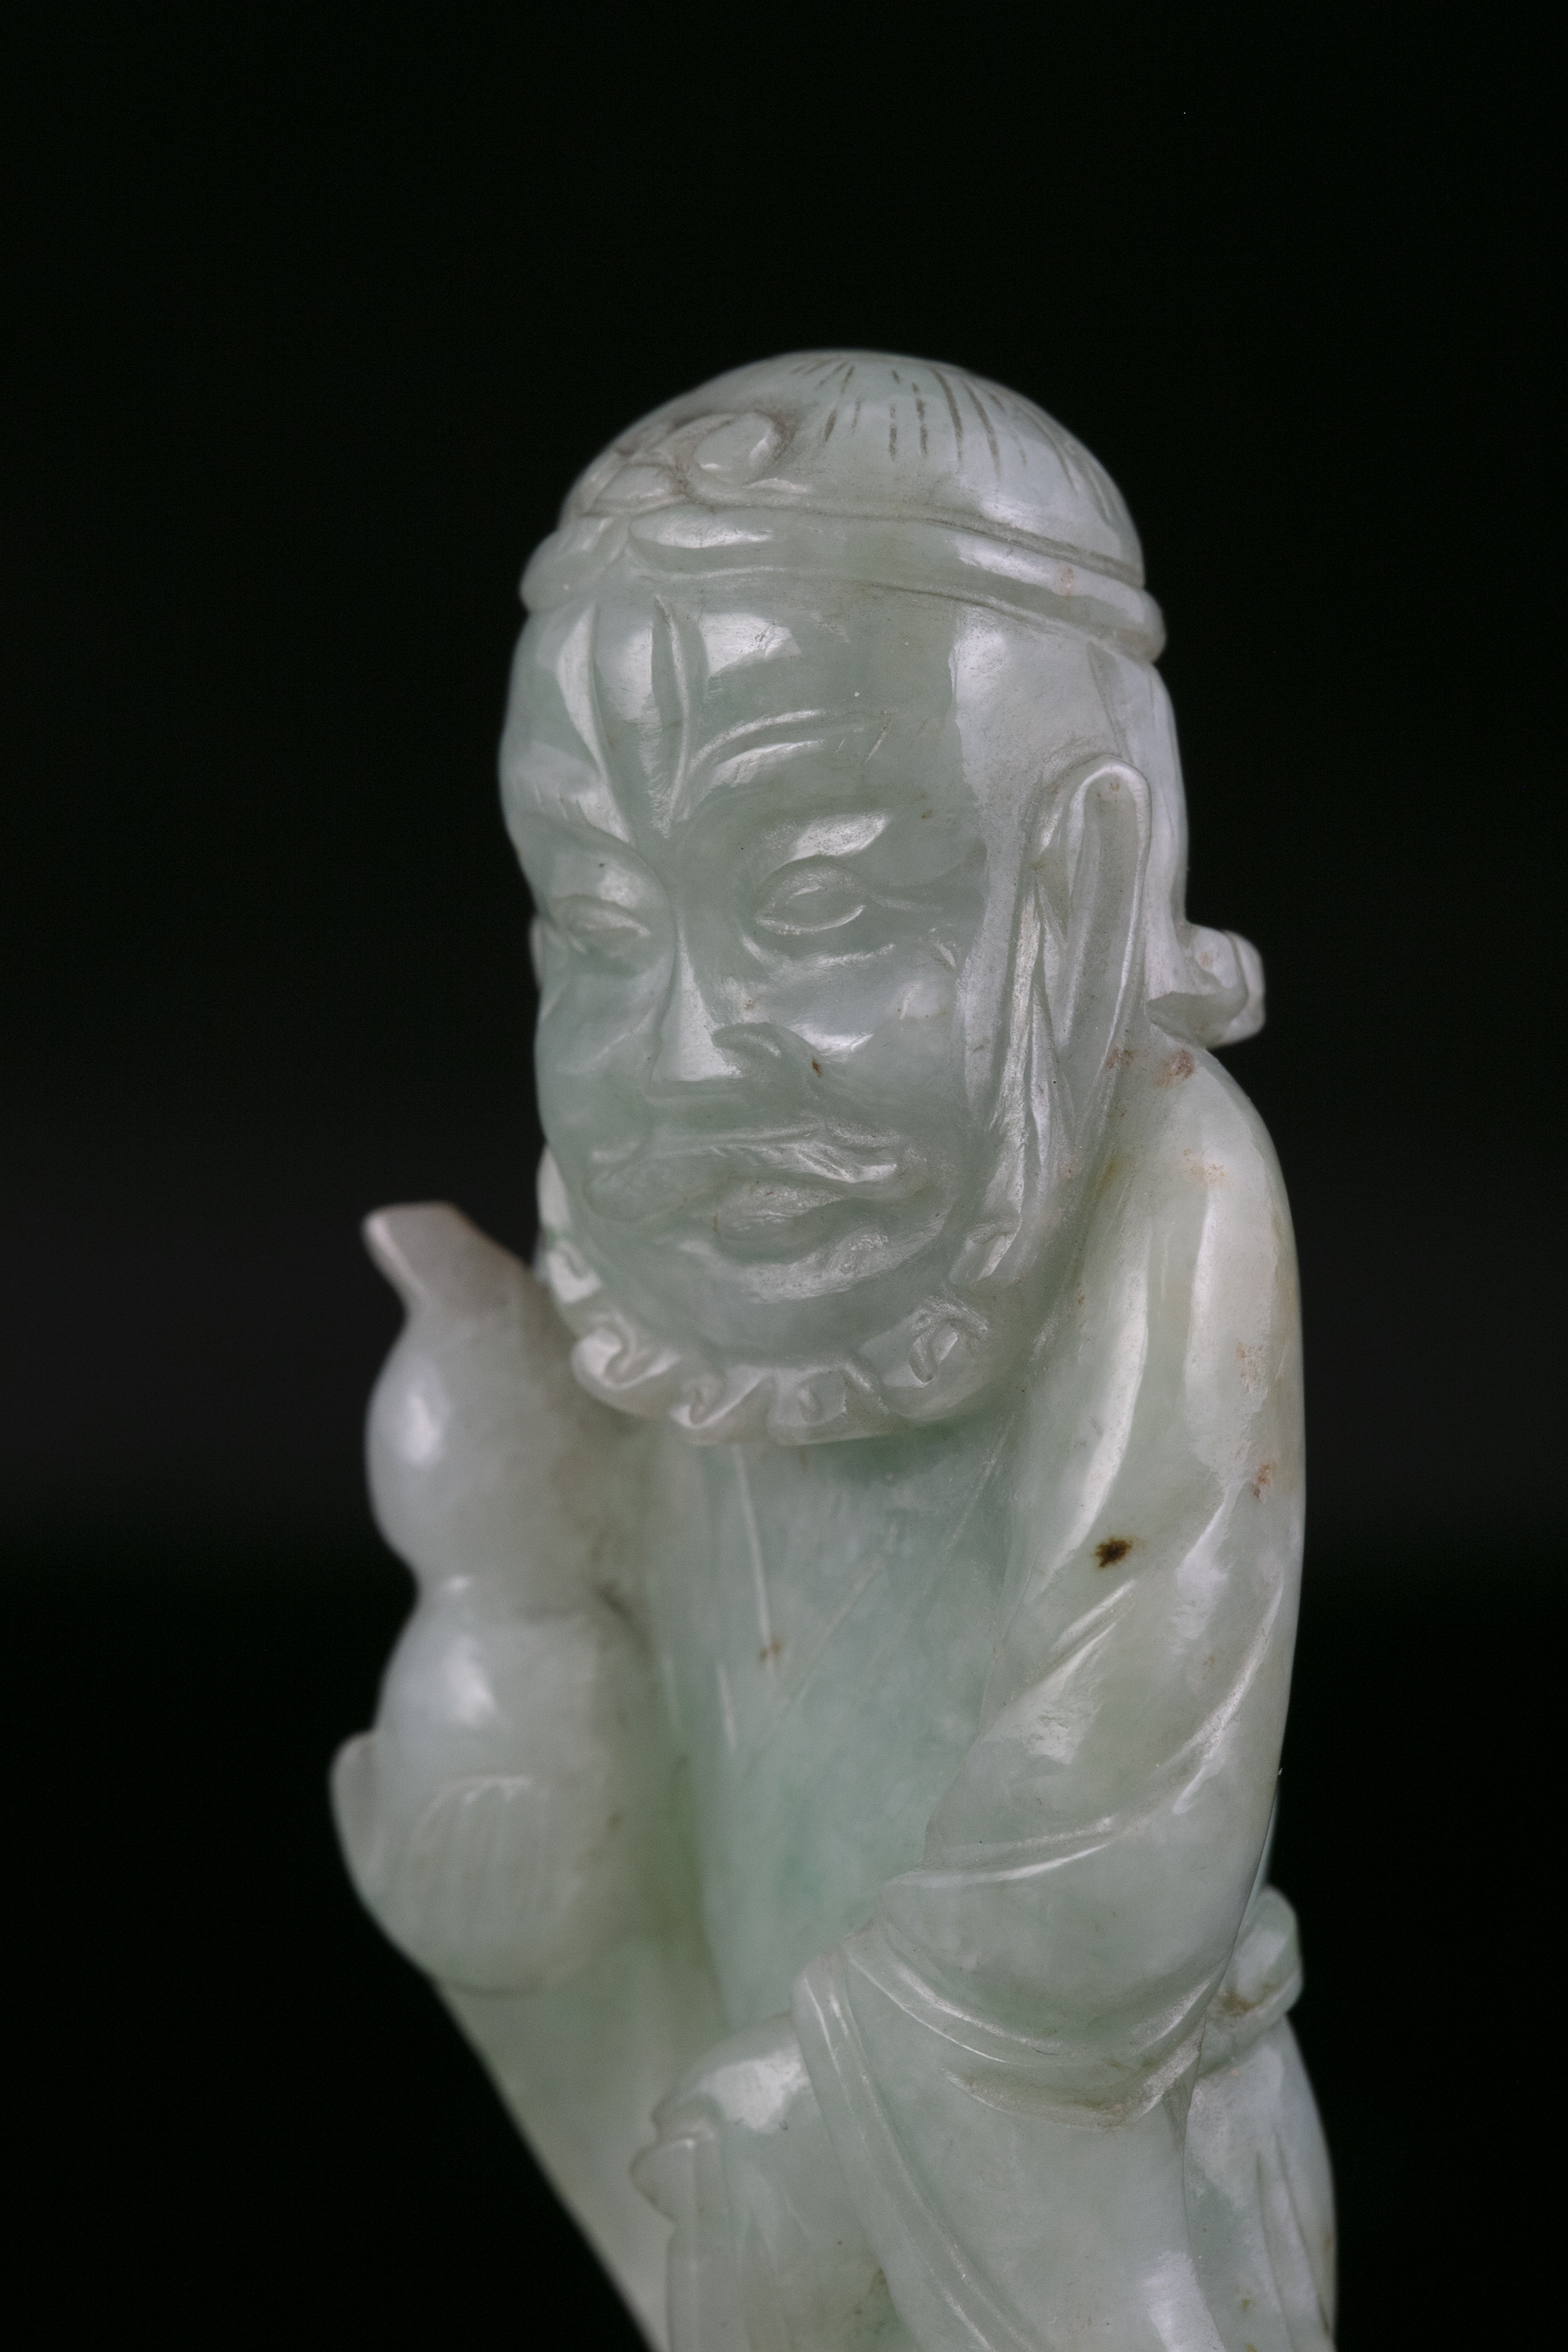 A JADEITE JADE FIGURE OF A STANDING TIEGUAI LI China, Circa 1900 The immortal is depicted with a - Image 8 of 20